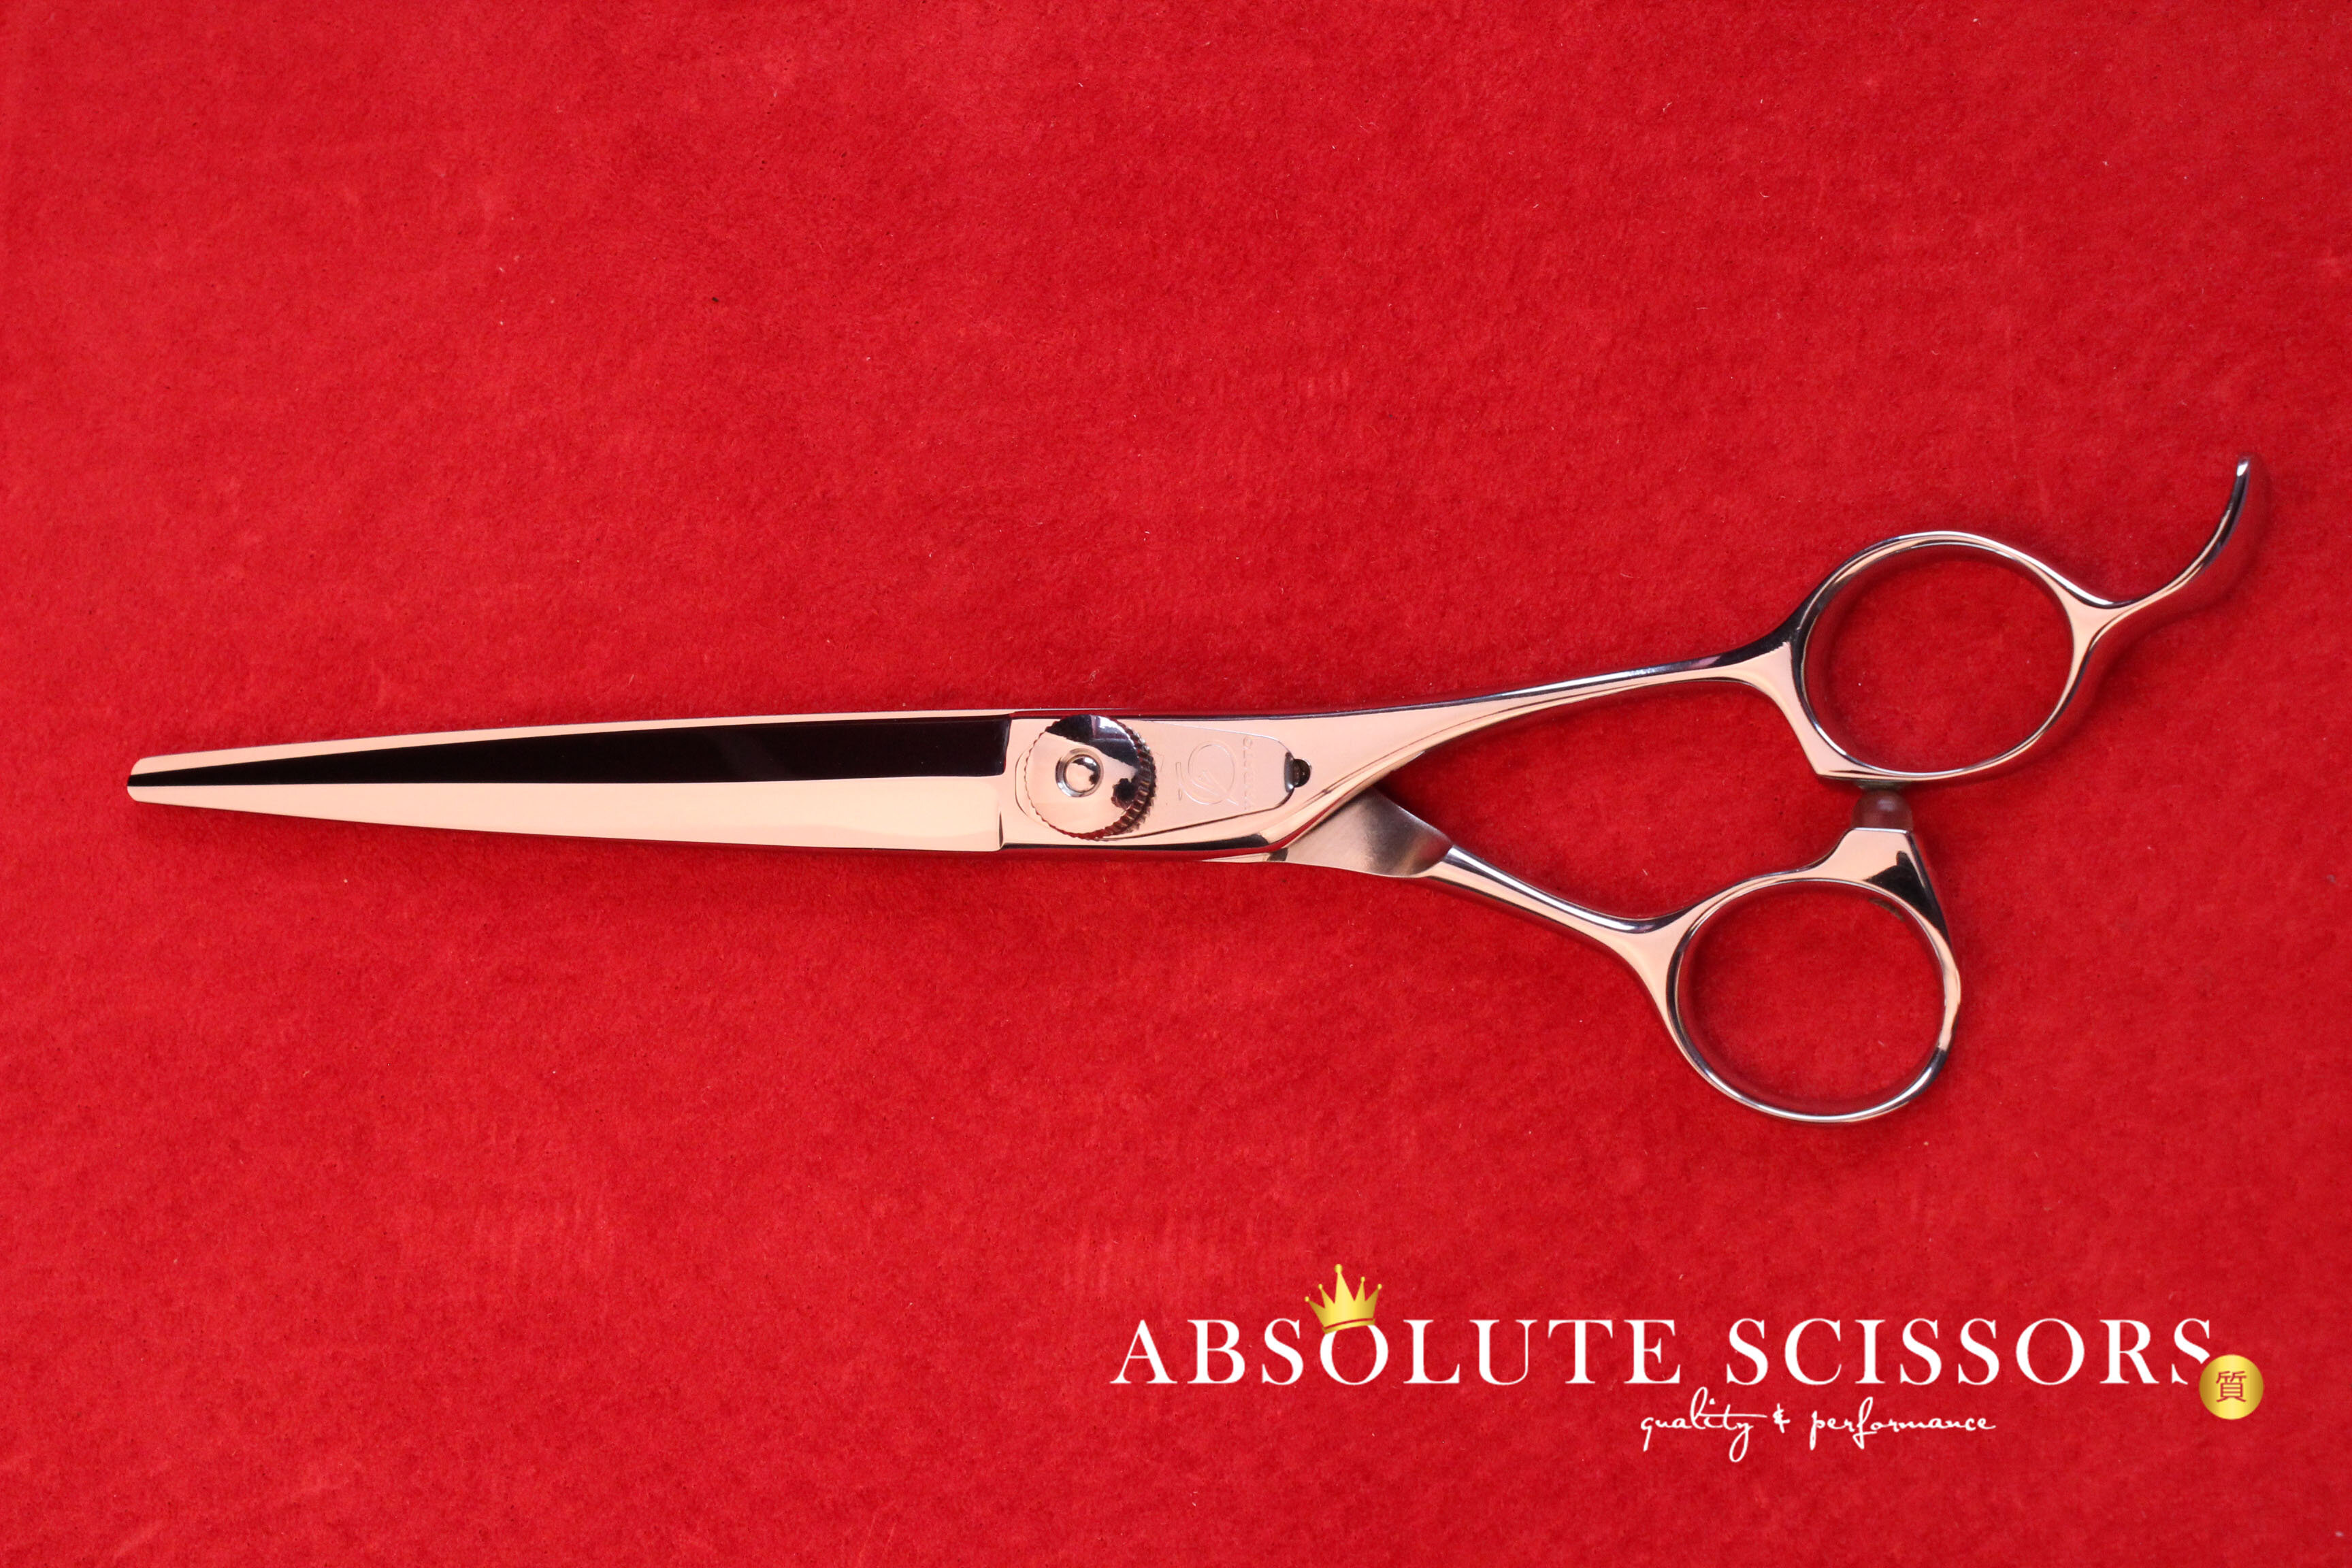 AV70 3777 Yamato hair scissors size 7 inches